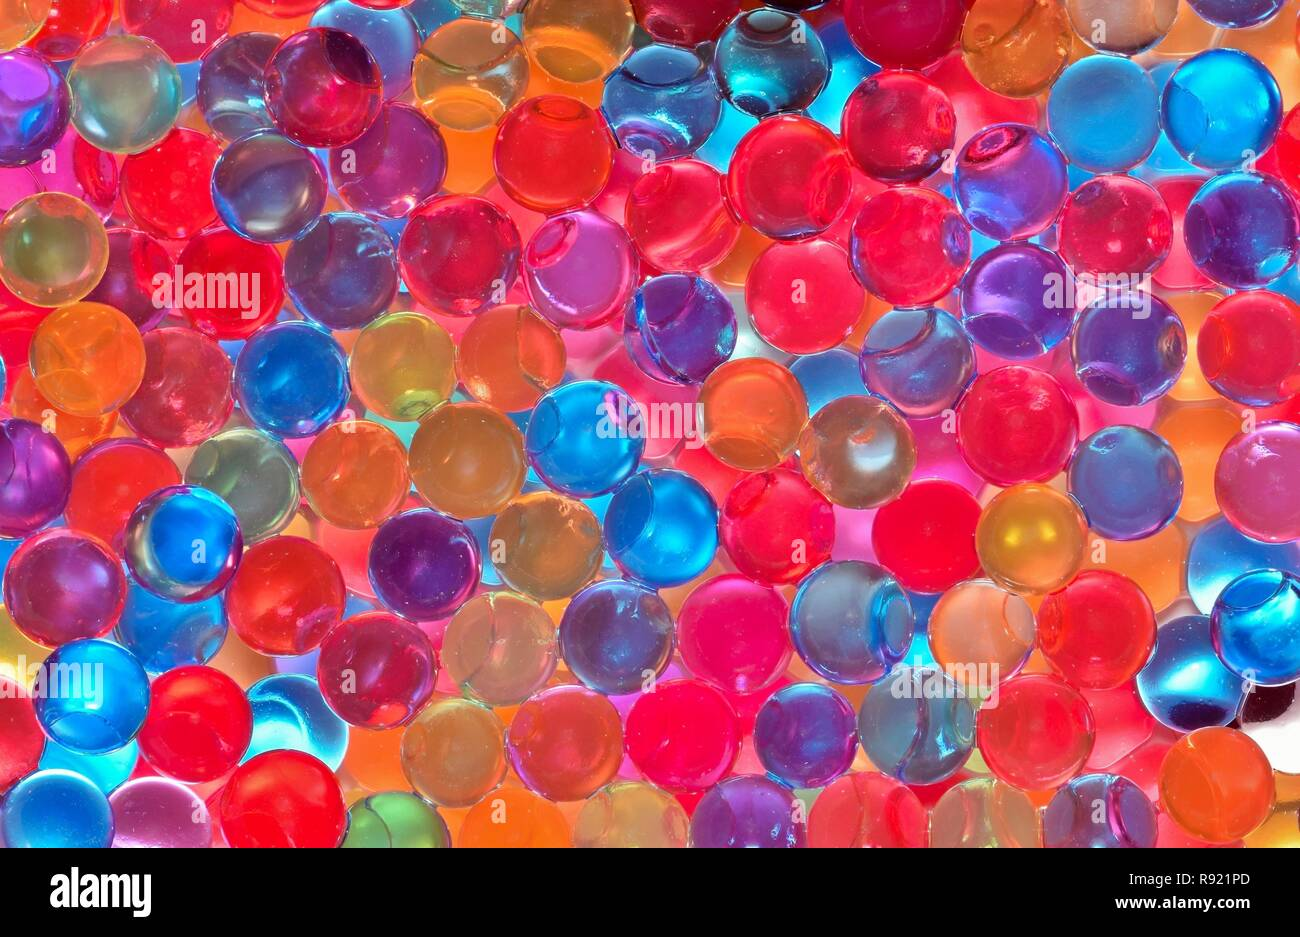 Good Wallpaper High Resolution Stock Photography And Images Alamy